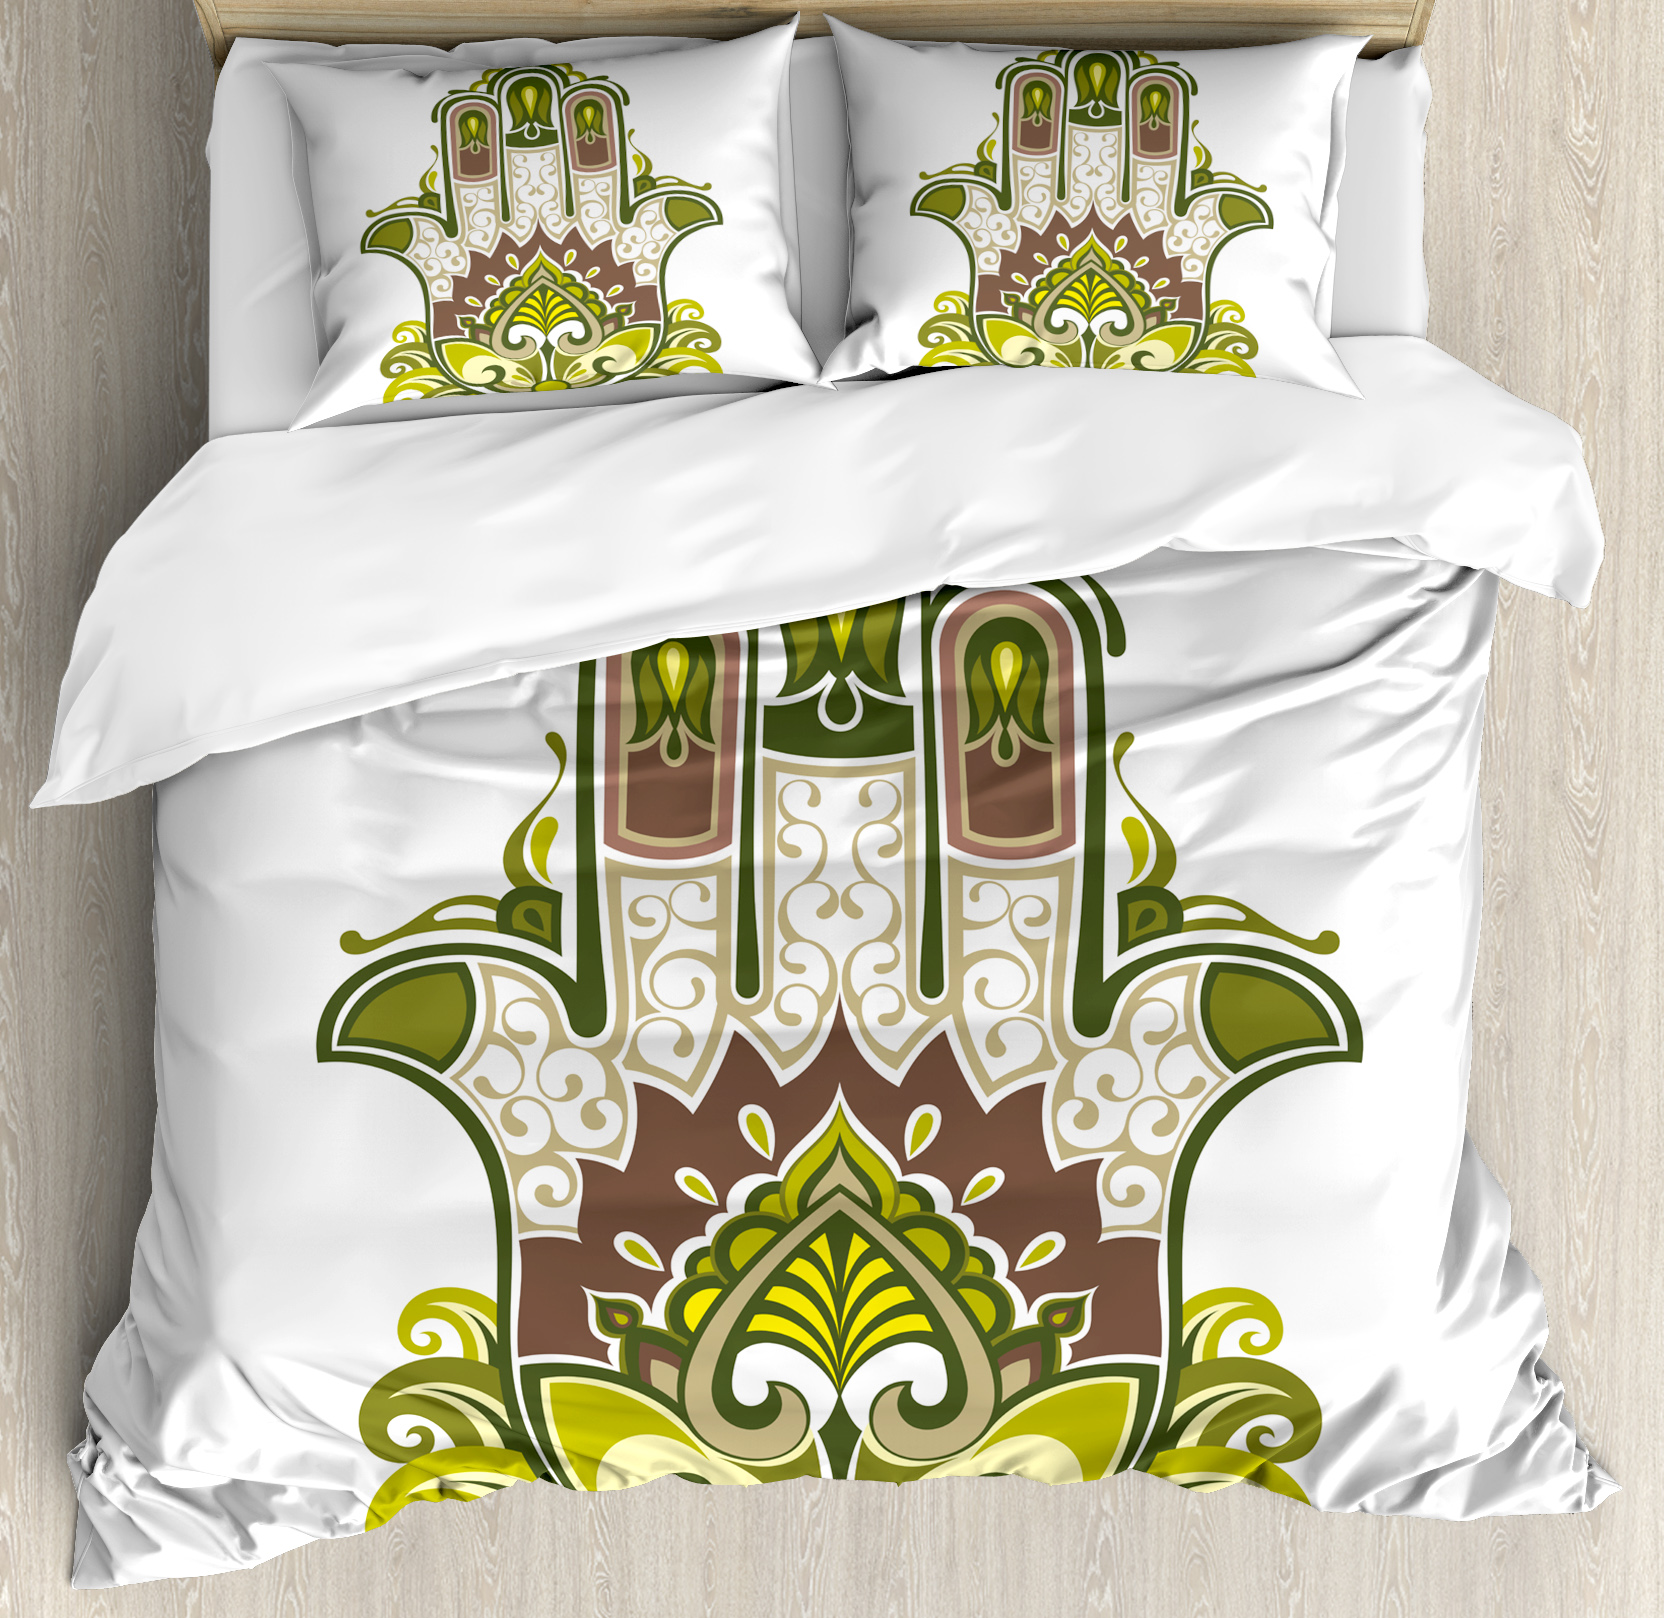 Hamsa King Size Duvet Cover Set, Asian Symbol with Mandala Inspired Motifs Lotus Paisley Traditional, Decorative 3 Piece Bedding Set with 2 Pillow Shams, Dimgrey Green Apple Green, by Ambesonne